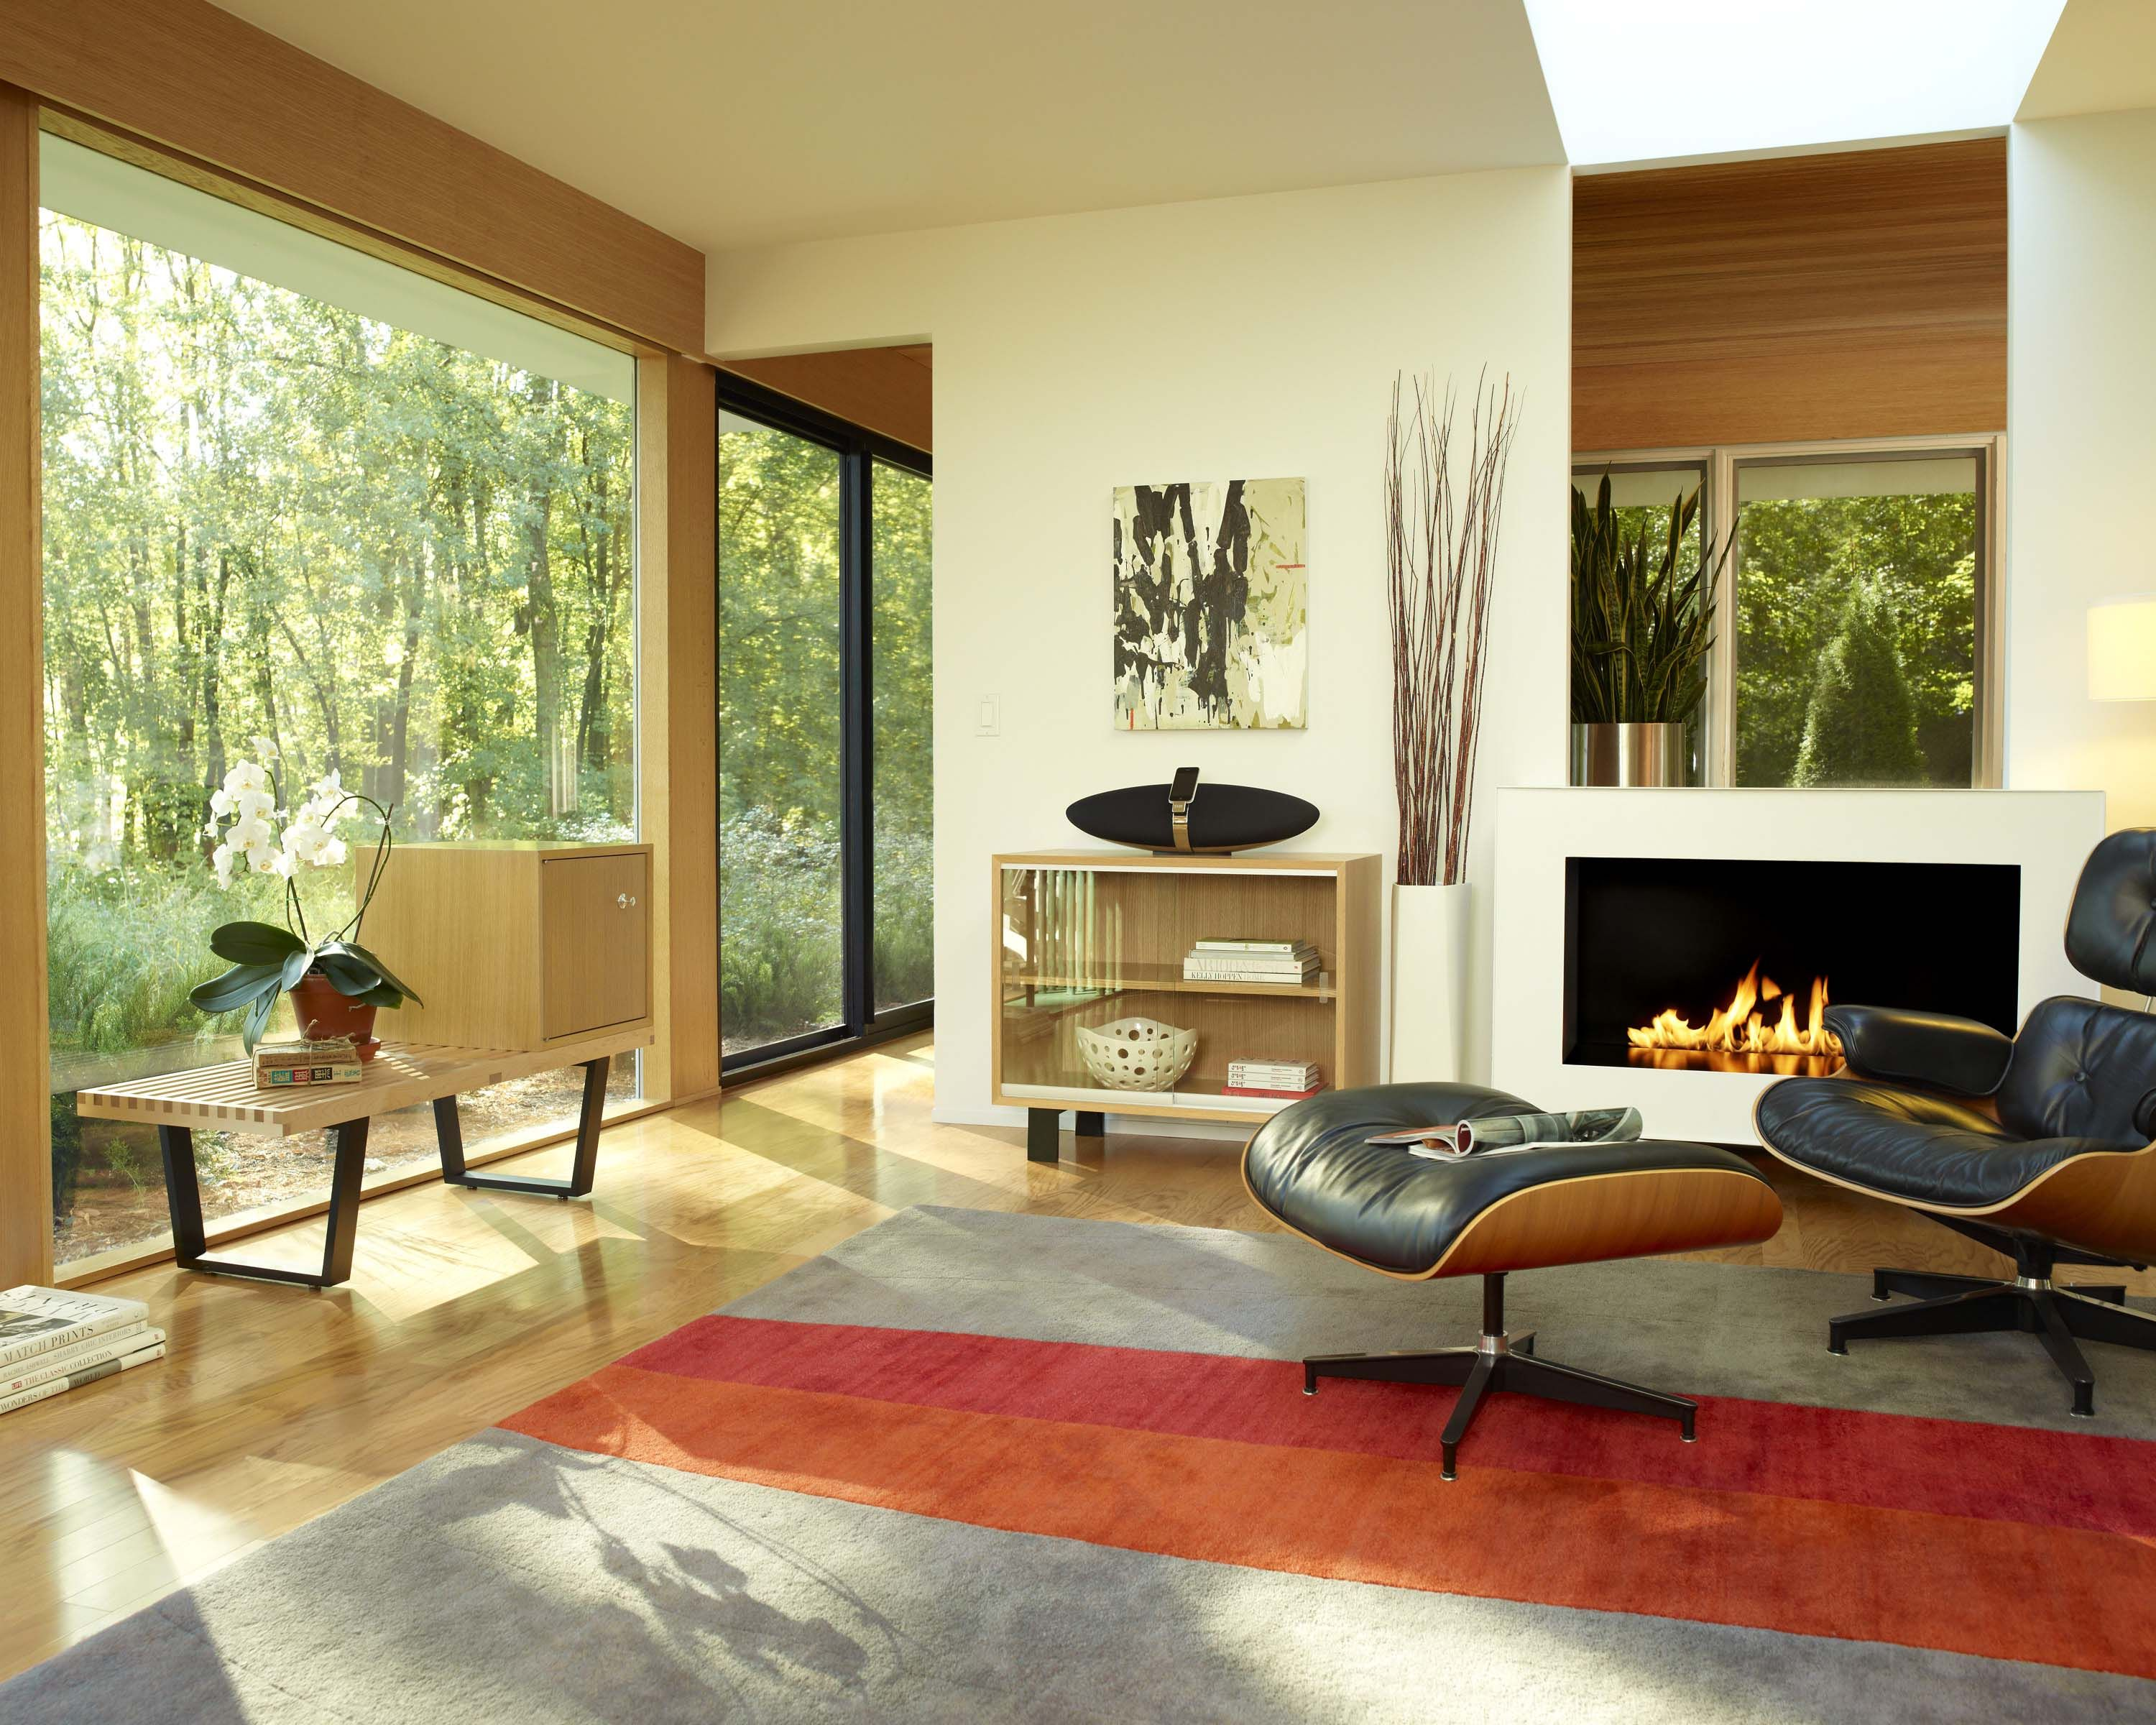 Eames lounge chair living room - Beautiful Modern Interior Design Eames Lounge Chair And Ottoman Fireplace George Nelson Bench